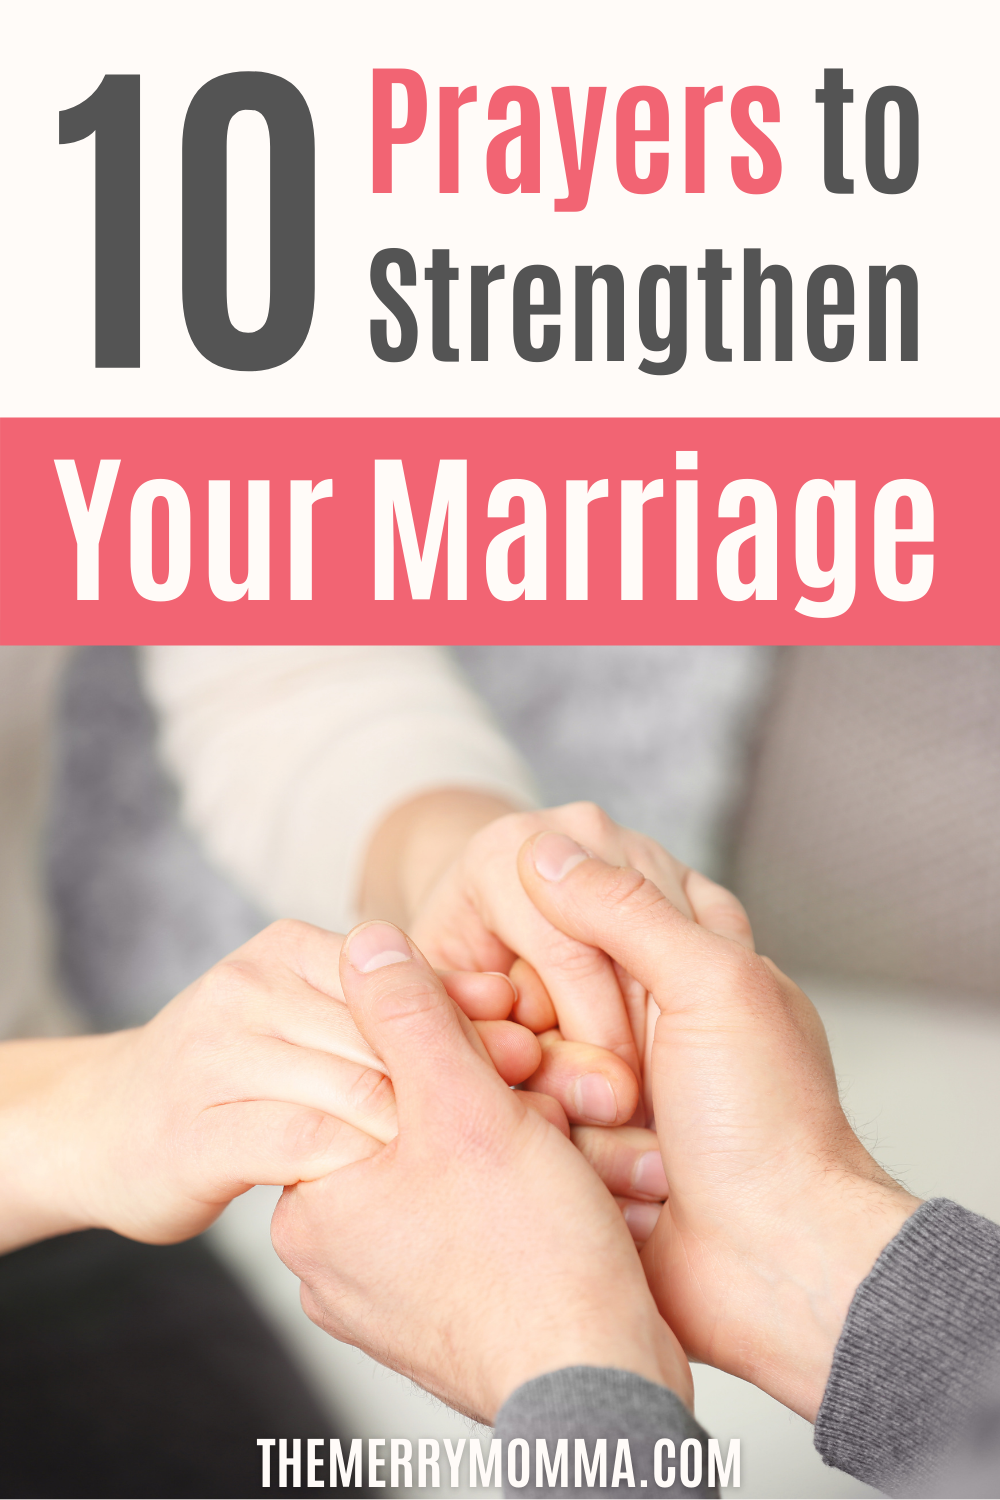 10 Prayers to Strengthen Your Marriage PIN